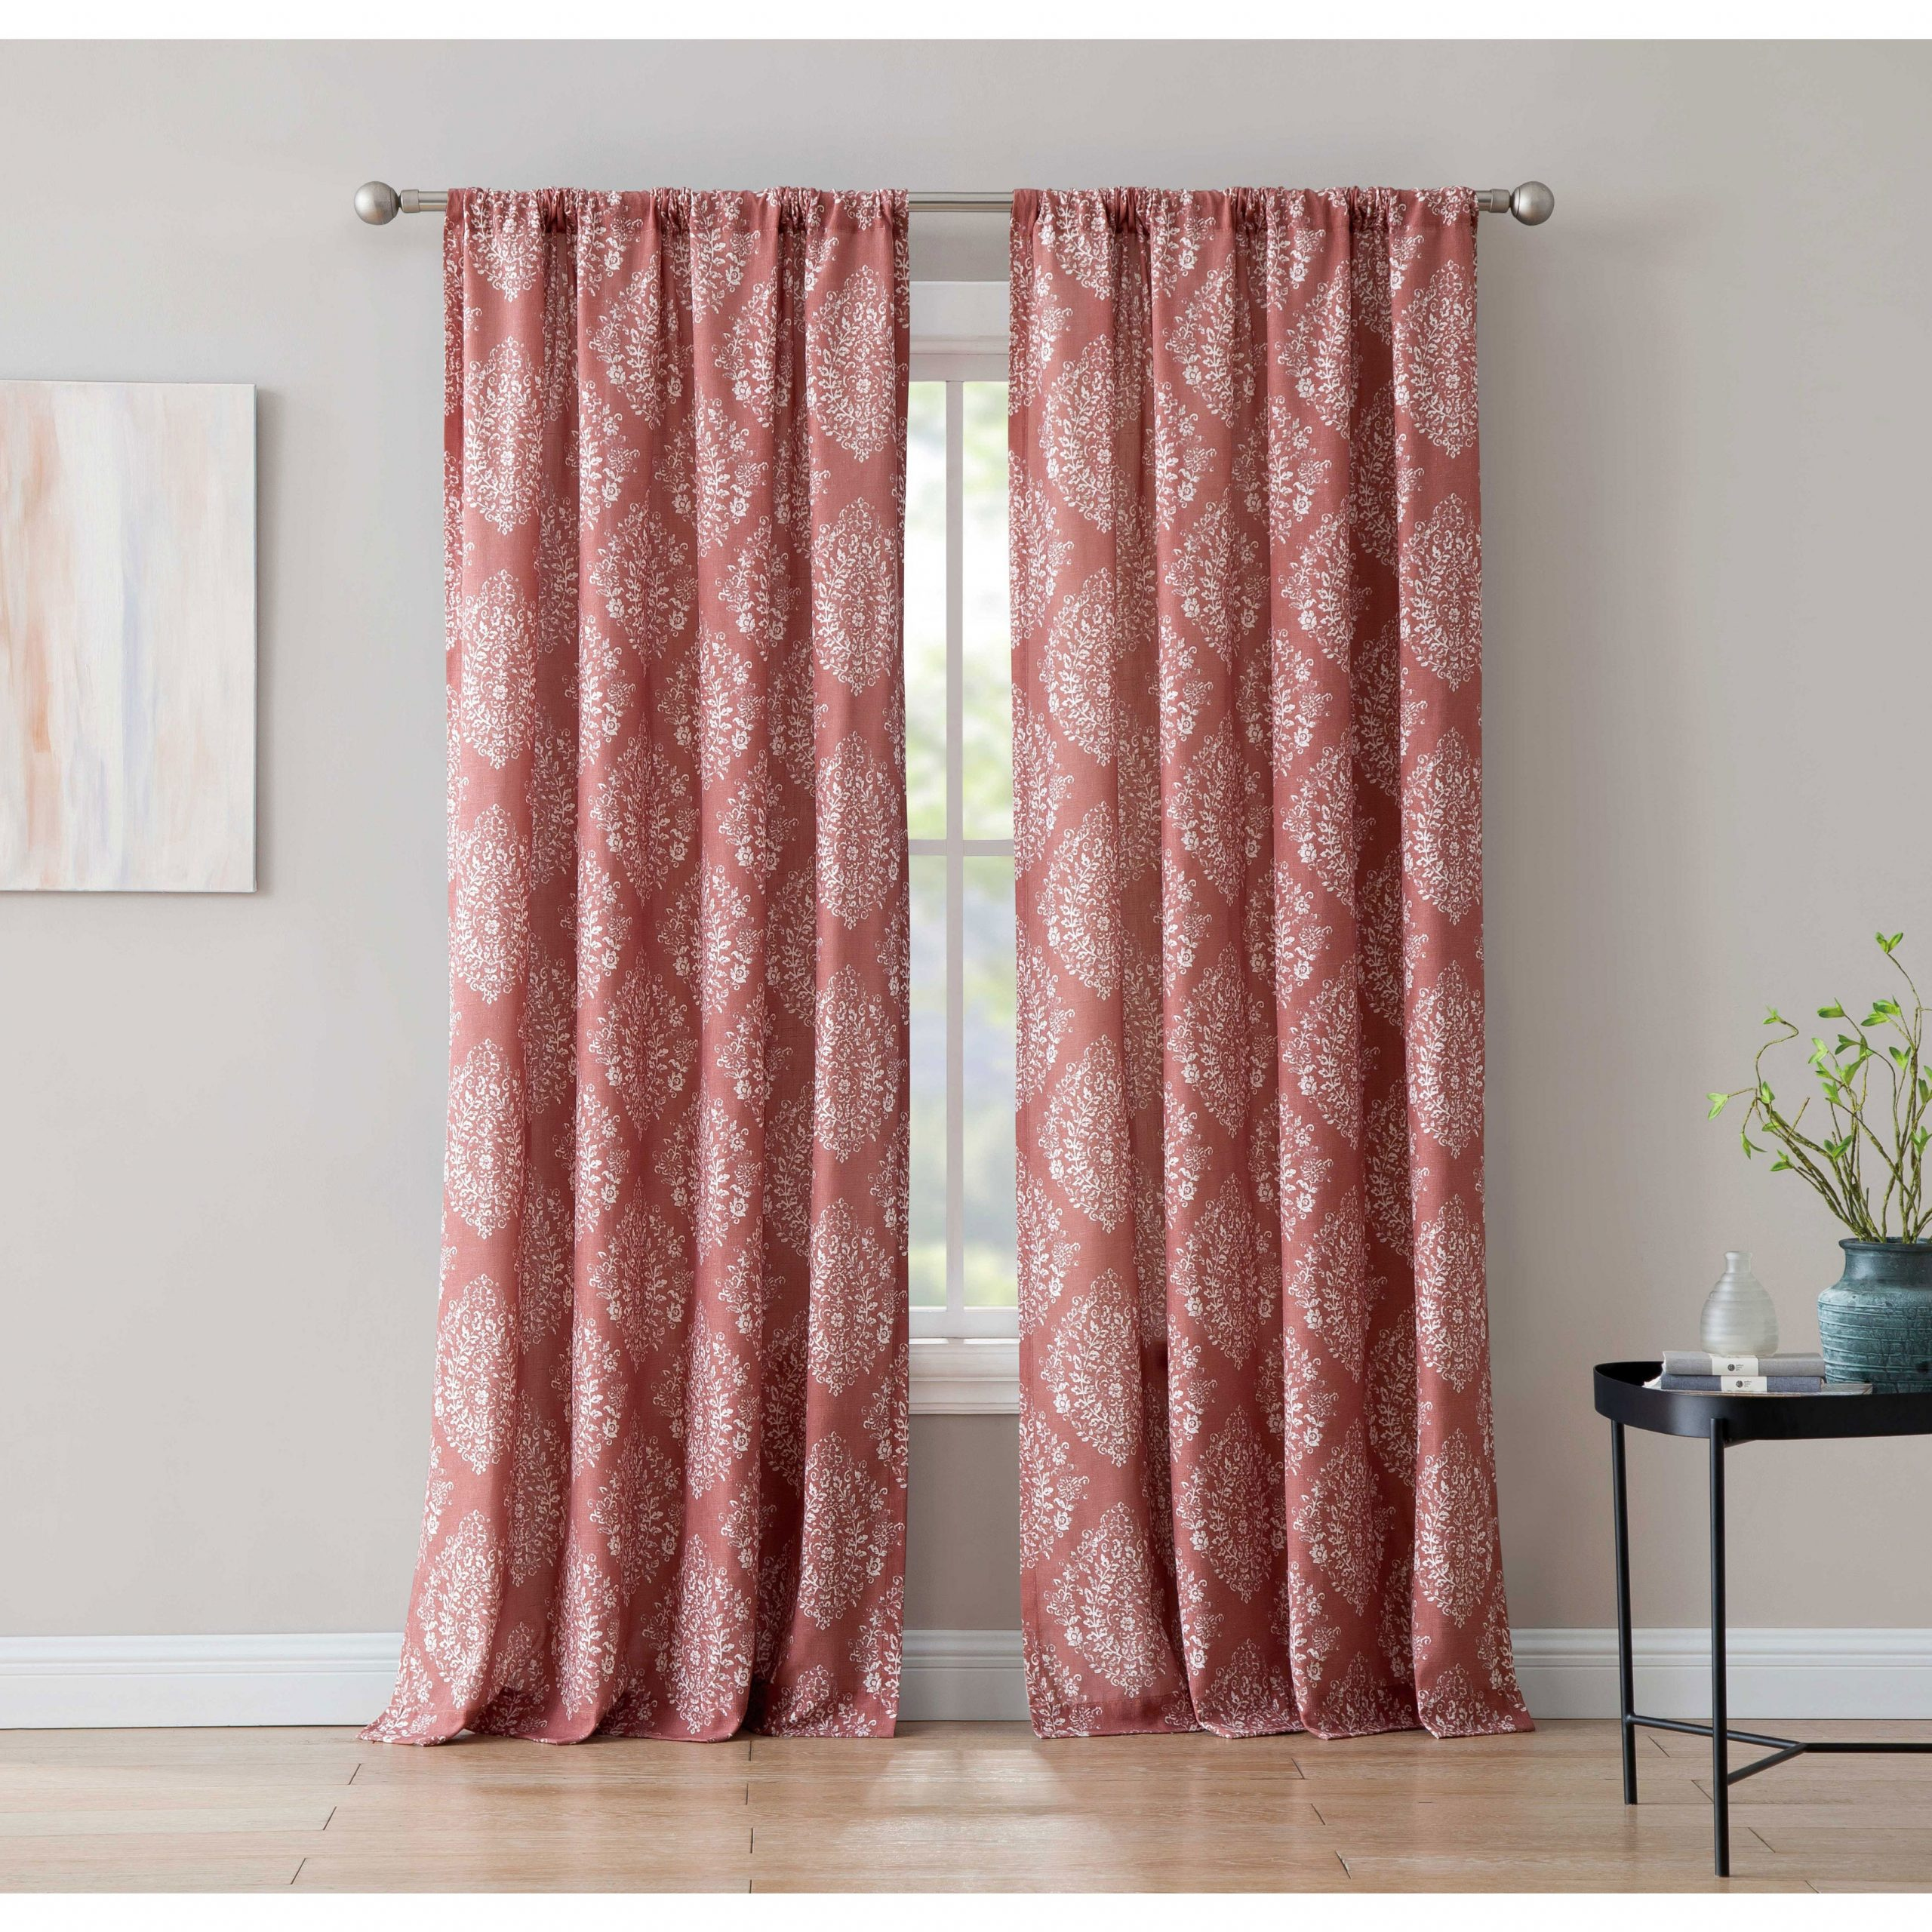 Best And Newest Alma 84 Inch Window Curtain With Rod Pocket Single Panel, Inspired Surroundings1888 Mills For Willow Rod Pocket Window Curtain Panels (View 19 of 20)